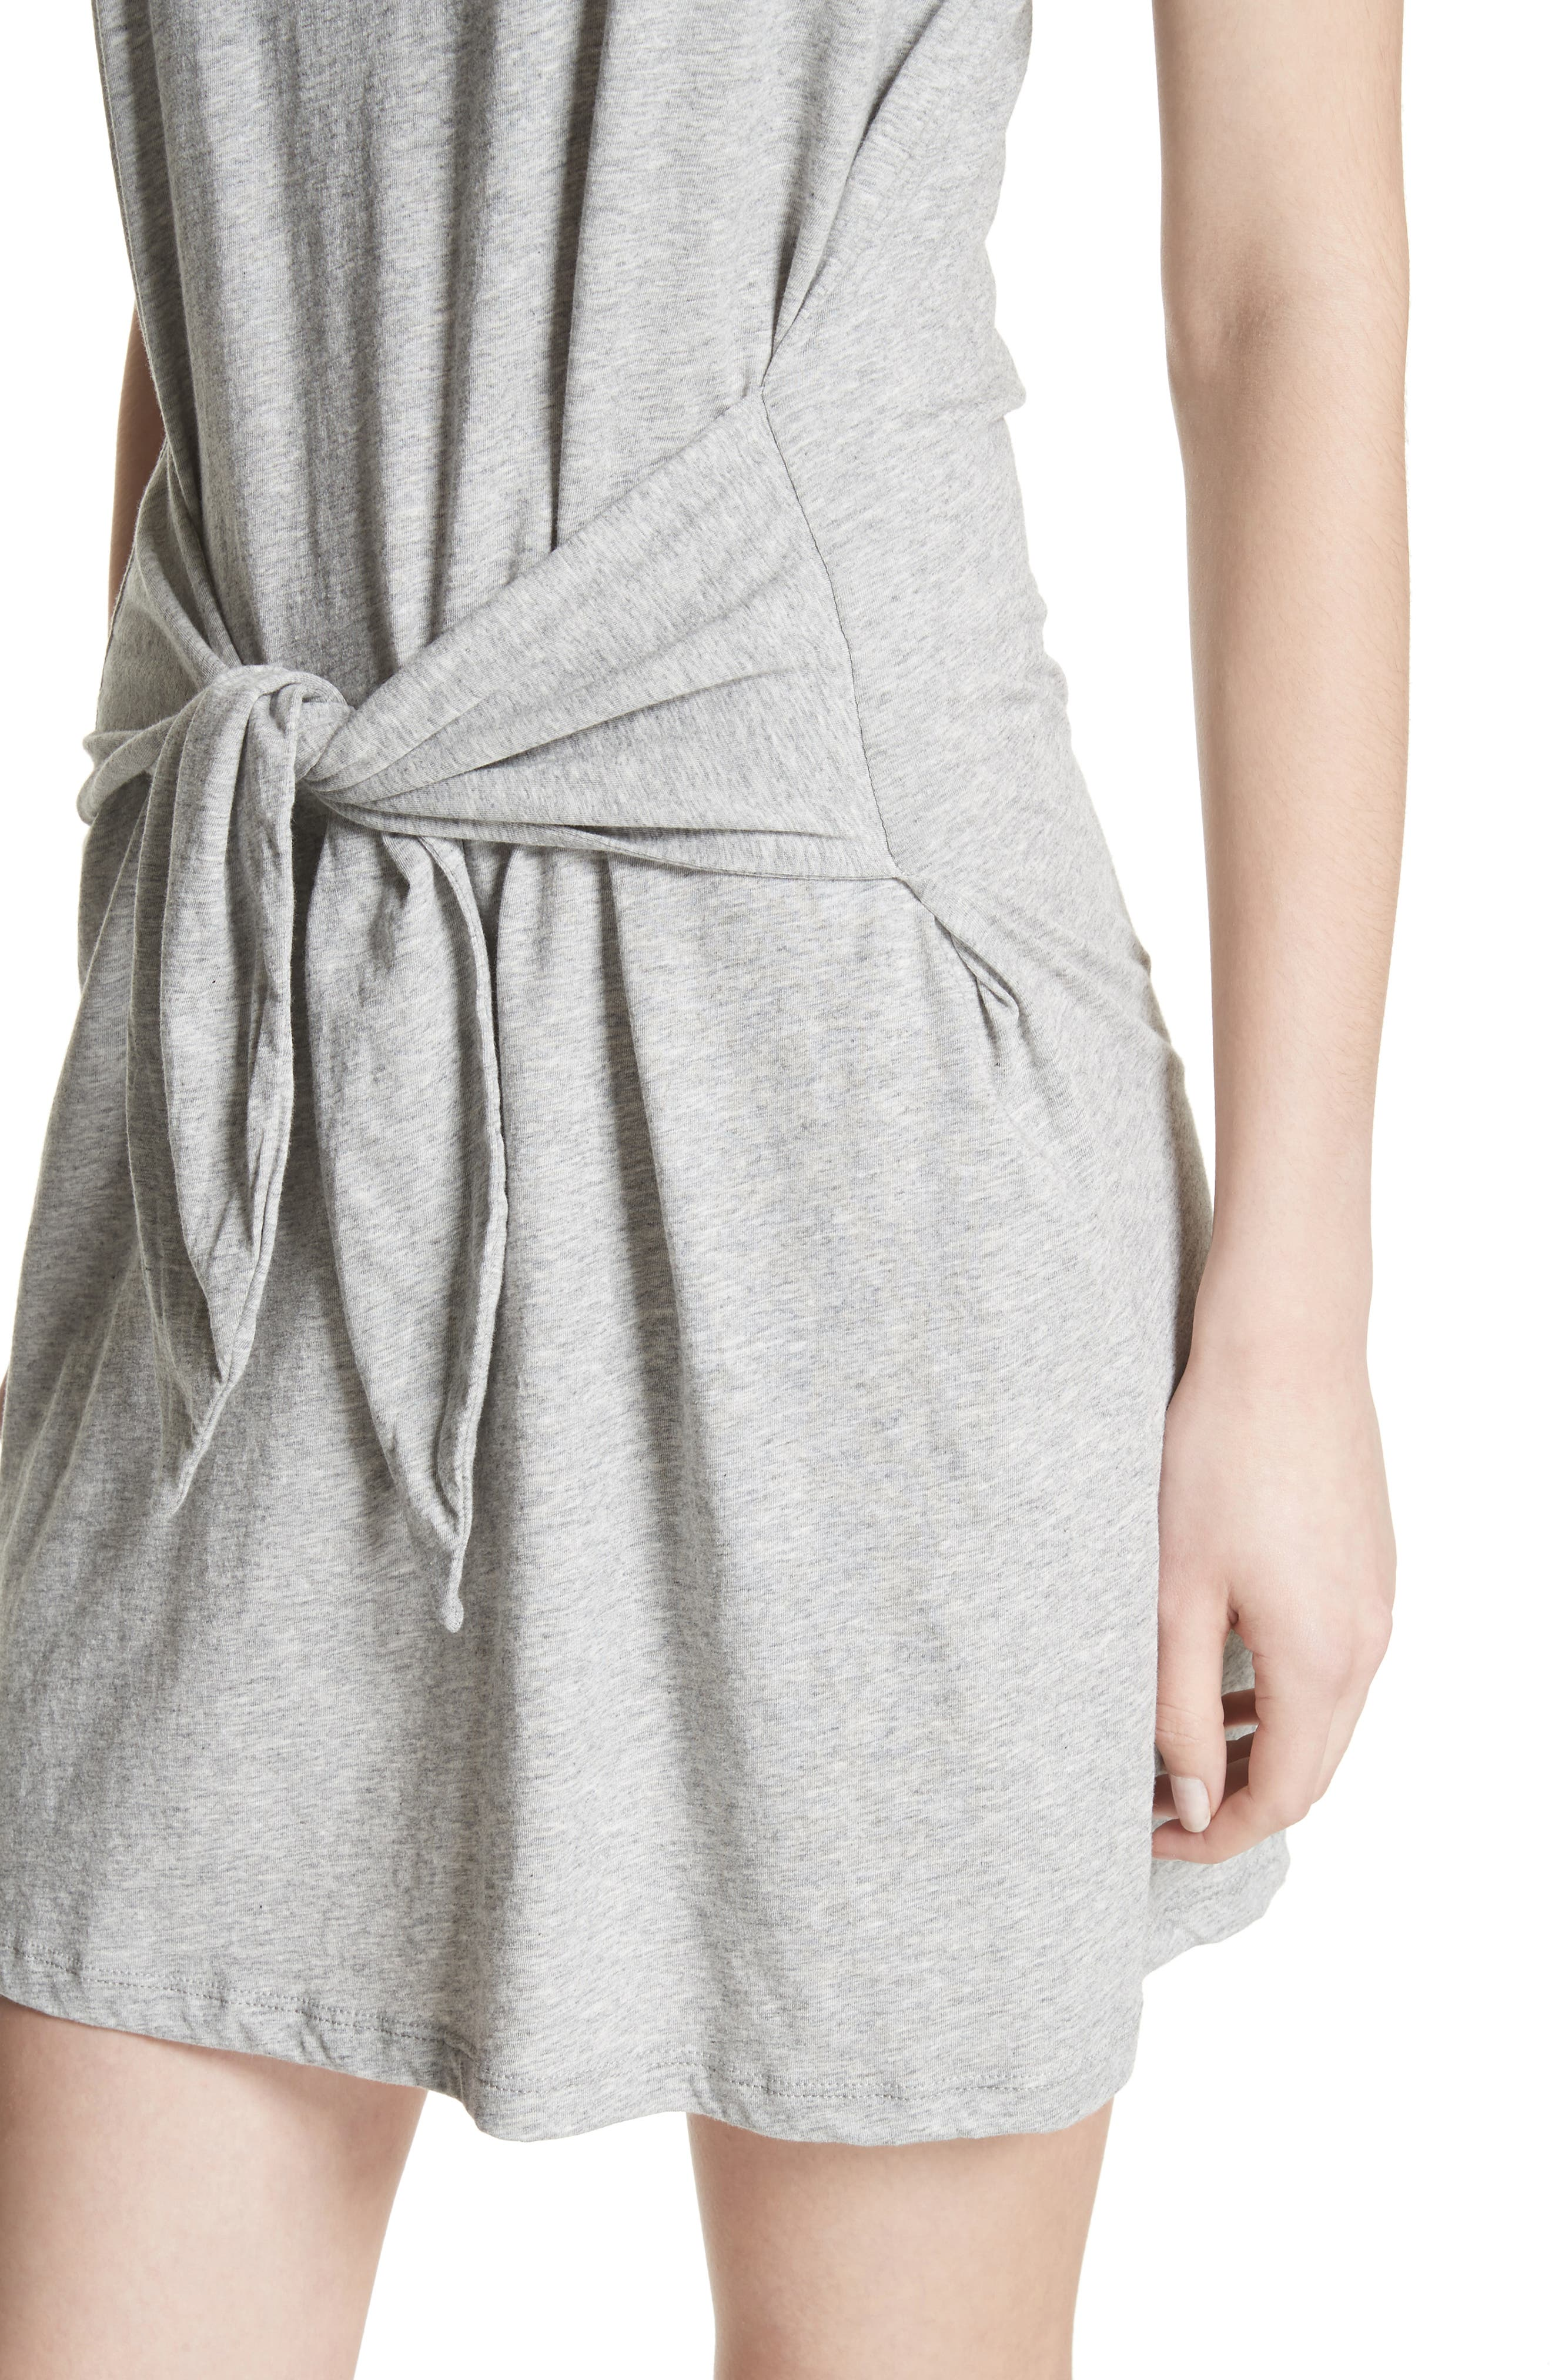 Alyra Tie Waist Cotton T-Shirt Dress,                             Alternate thumbnail 4, color,                             Heather Grey